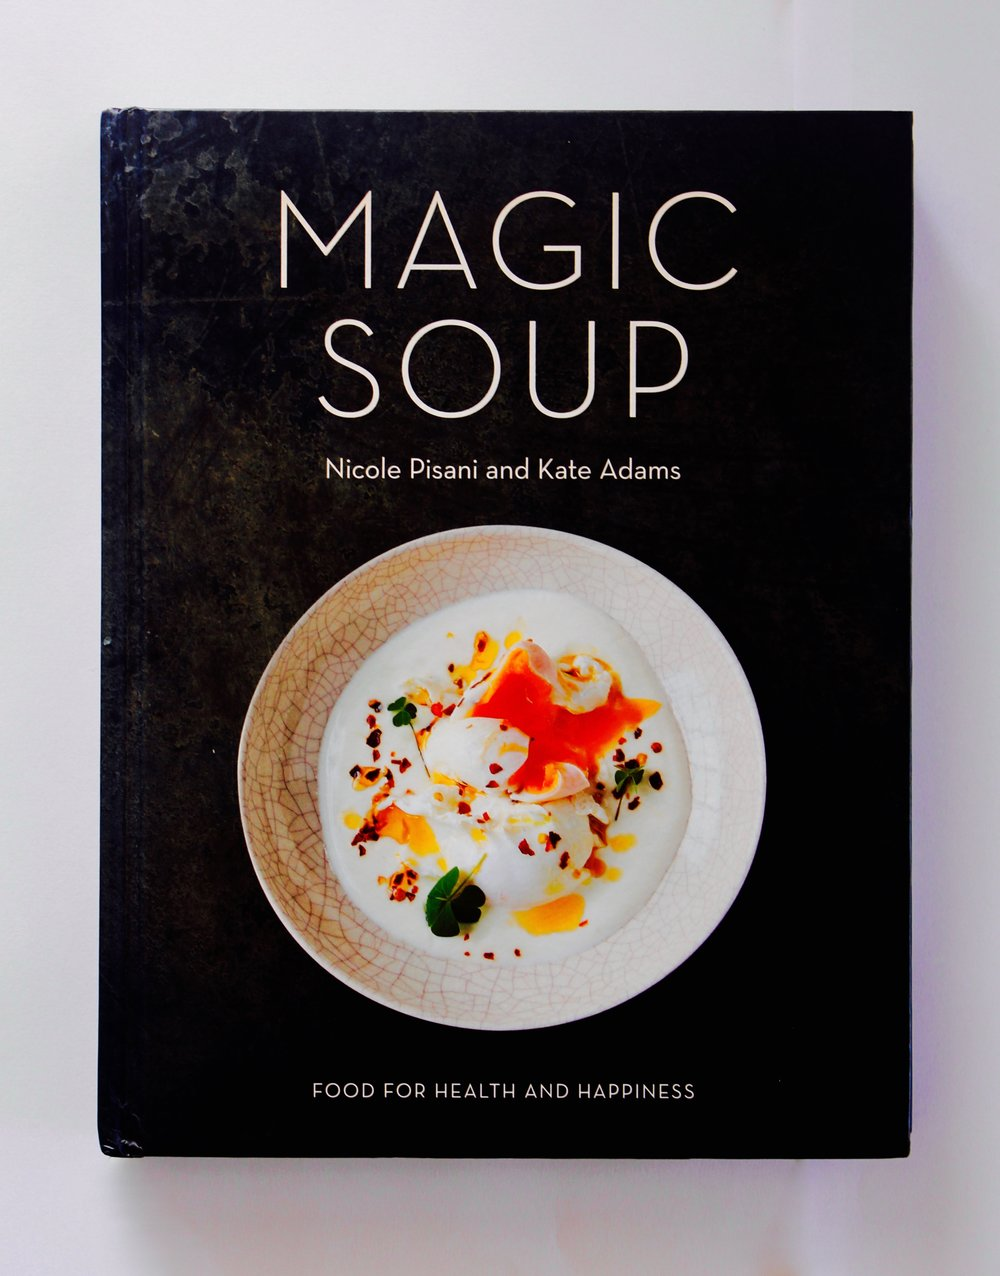 Magic Soup , Nicole Pisani and Kate Adams, W&N, design by Caroline Clark